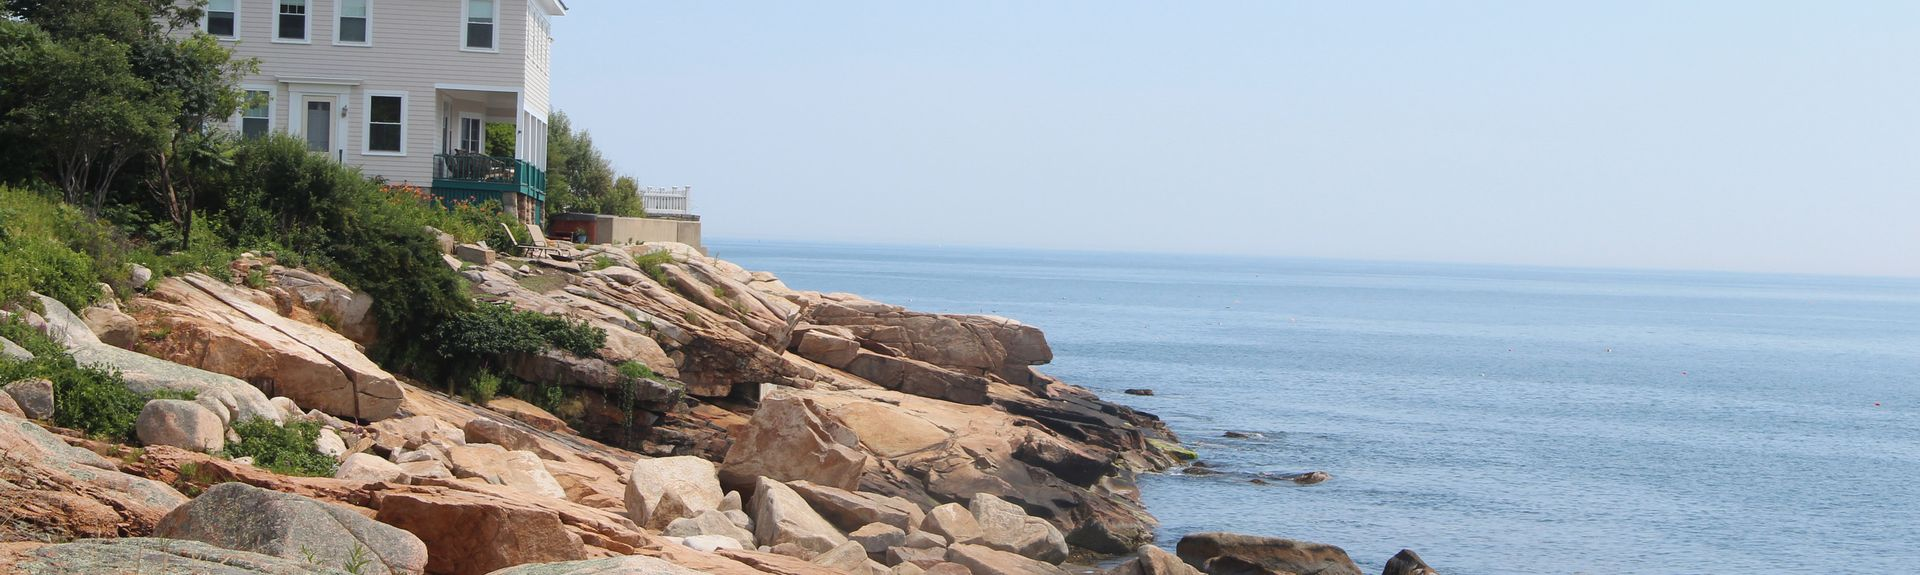 Eastern Point Lighthouse, Gloucester, Massachusetts, United States of America